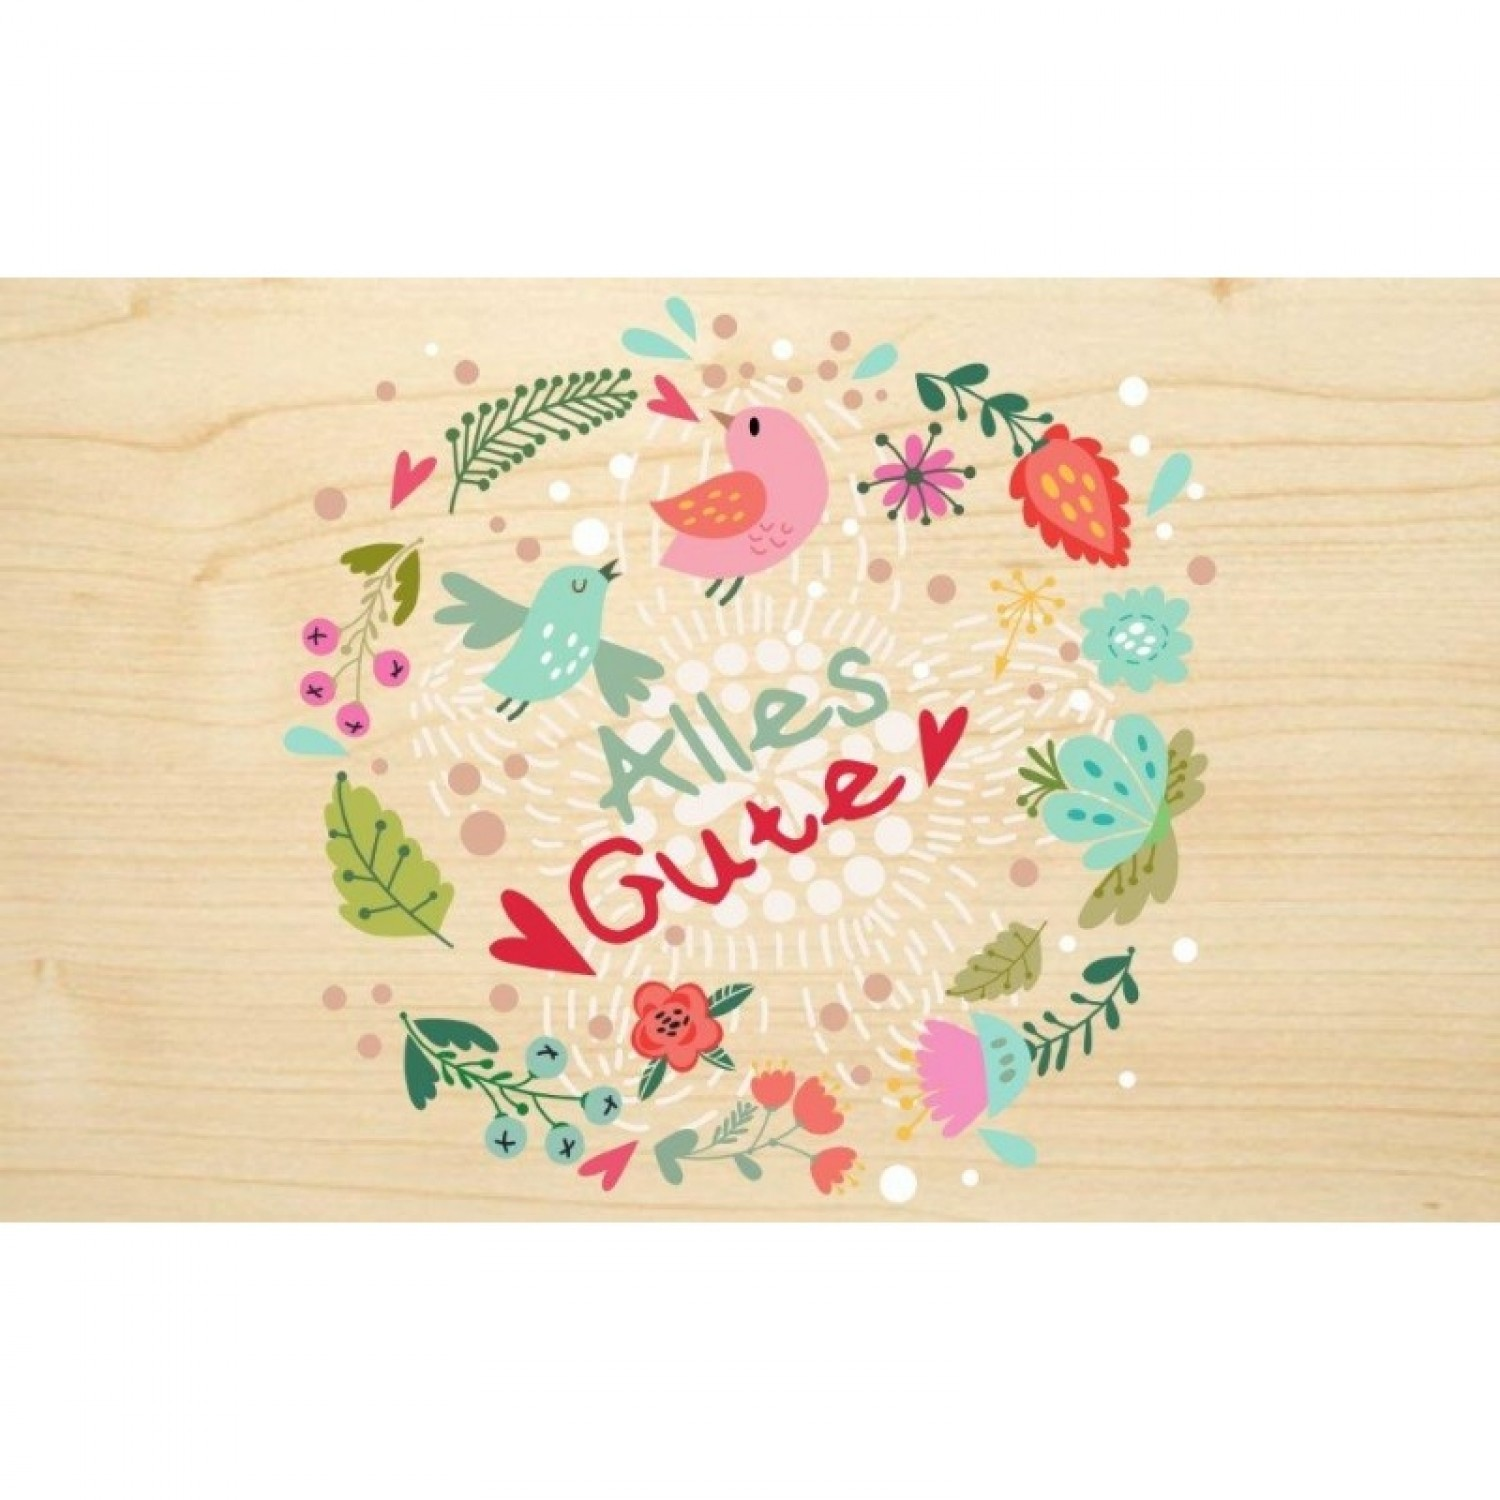 Alles Gute (All the best) eco wooden postcard | Biodora